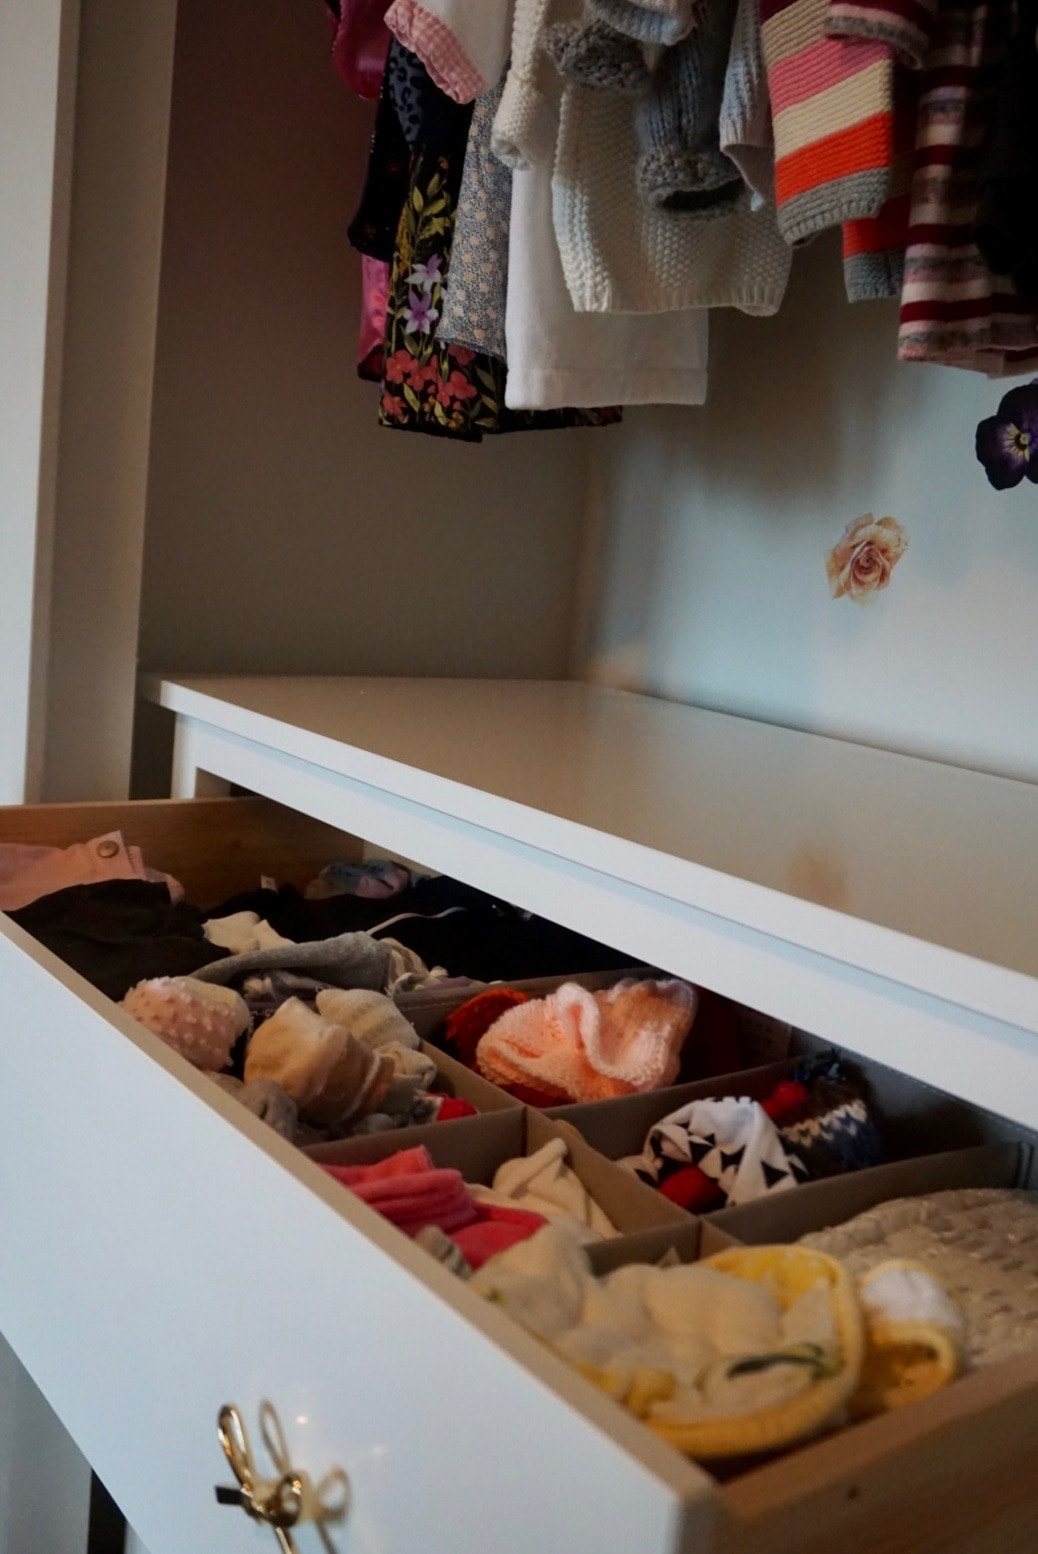 I also keep more clothes in her drawer. The top drawer houses everything that fits right now which includes onesies, t-shirts, jeans, leggings, bibs, hair accessories, socks, PJs and sleep sacks.